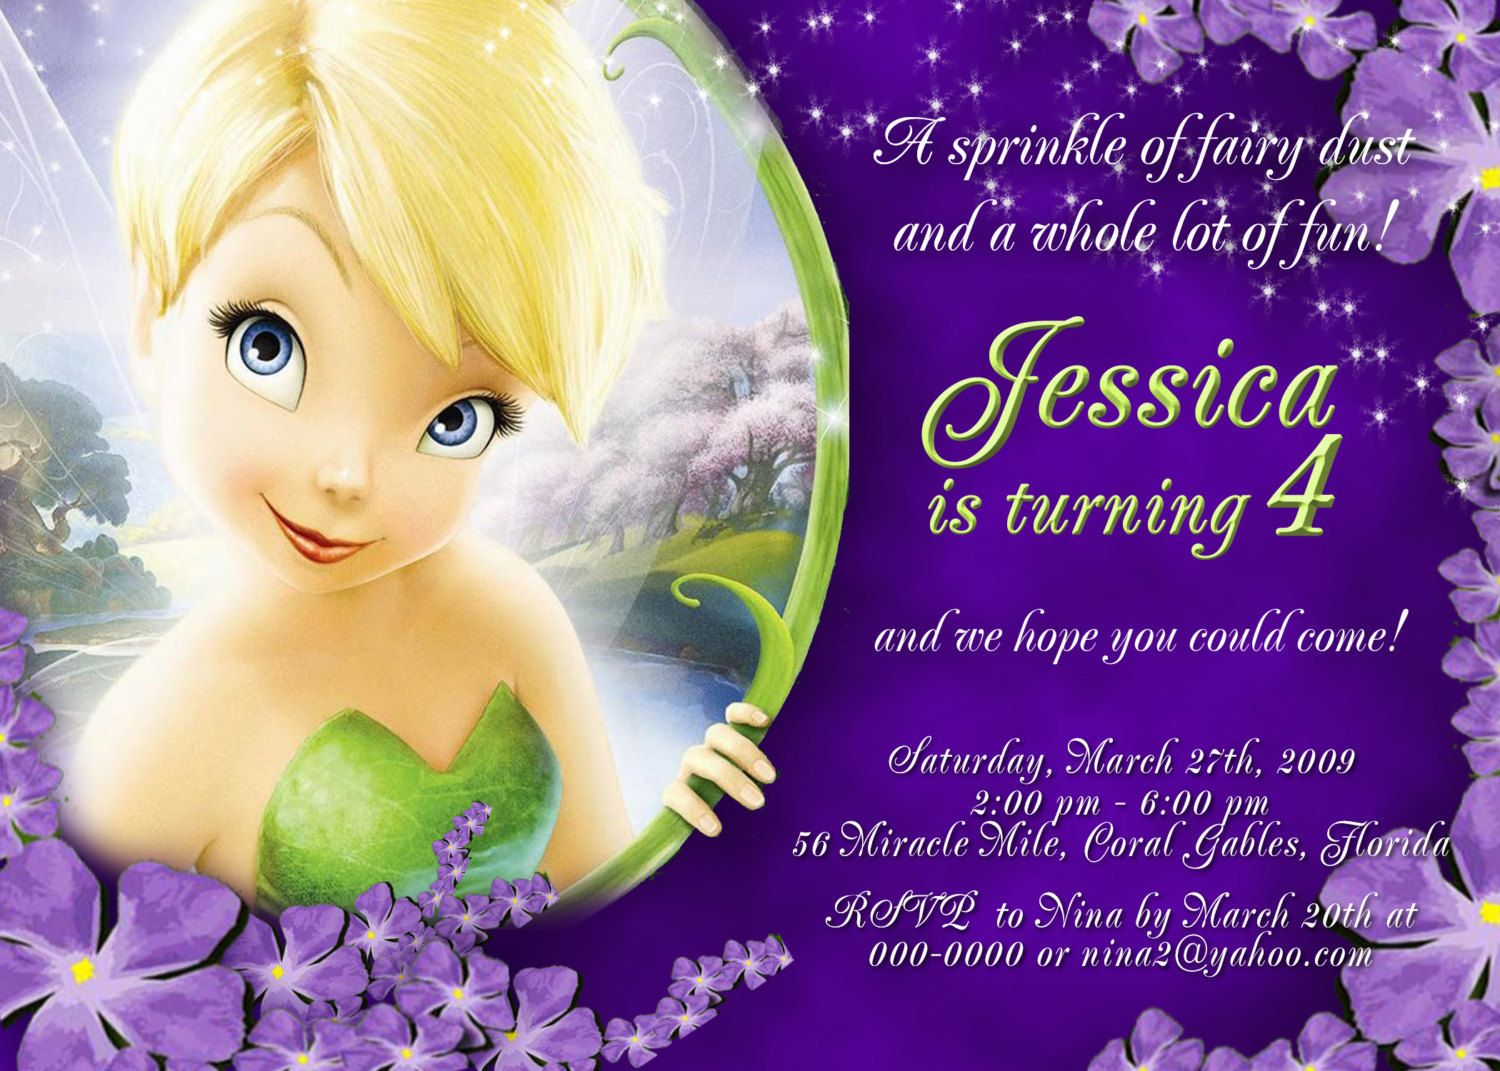 tinkerbell personalized birthday invitations by pinkskyprintables tinkerbell personalized birthday invitations by pinkskyprintables 11 00